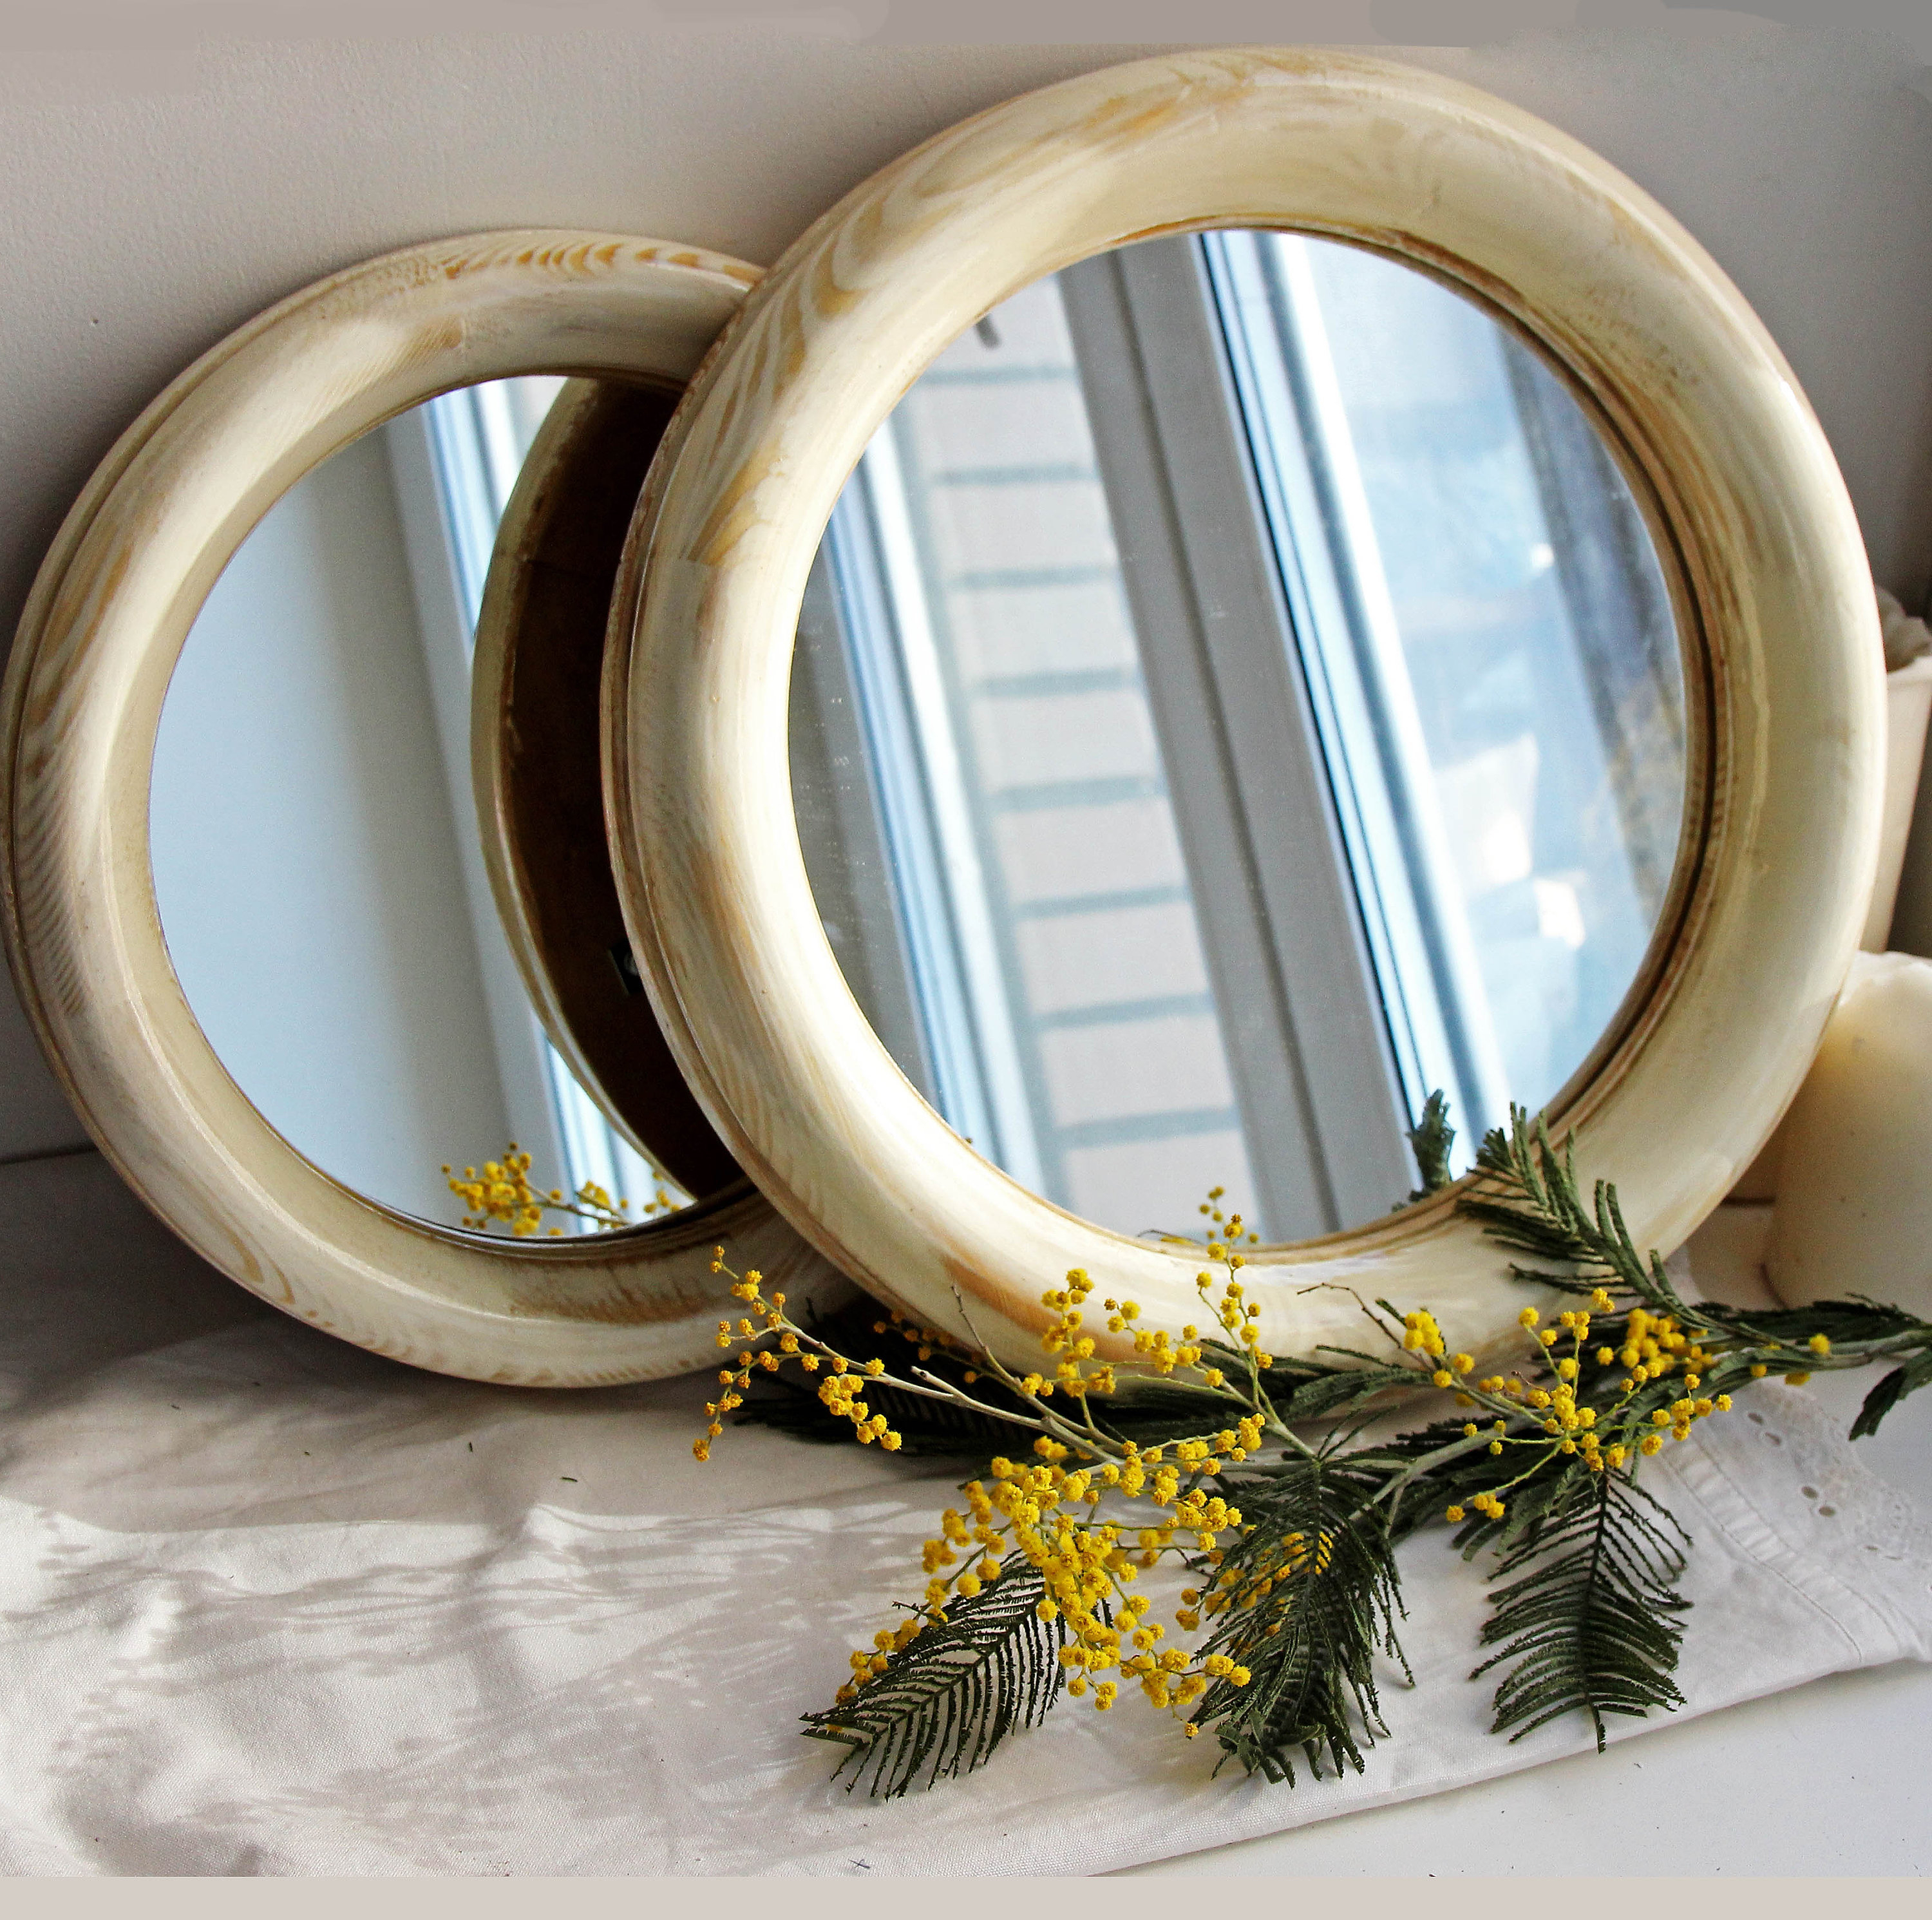 Well Known Small Round Wall Mirrors Throughout Round Mirror Round Decorative Wall Mirror Wood Mirror Frame Wall Mirror Wall Decor Round Ivory Mirror Small Round Framed Wall Mount Mirror (View 15 of 20)